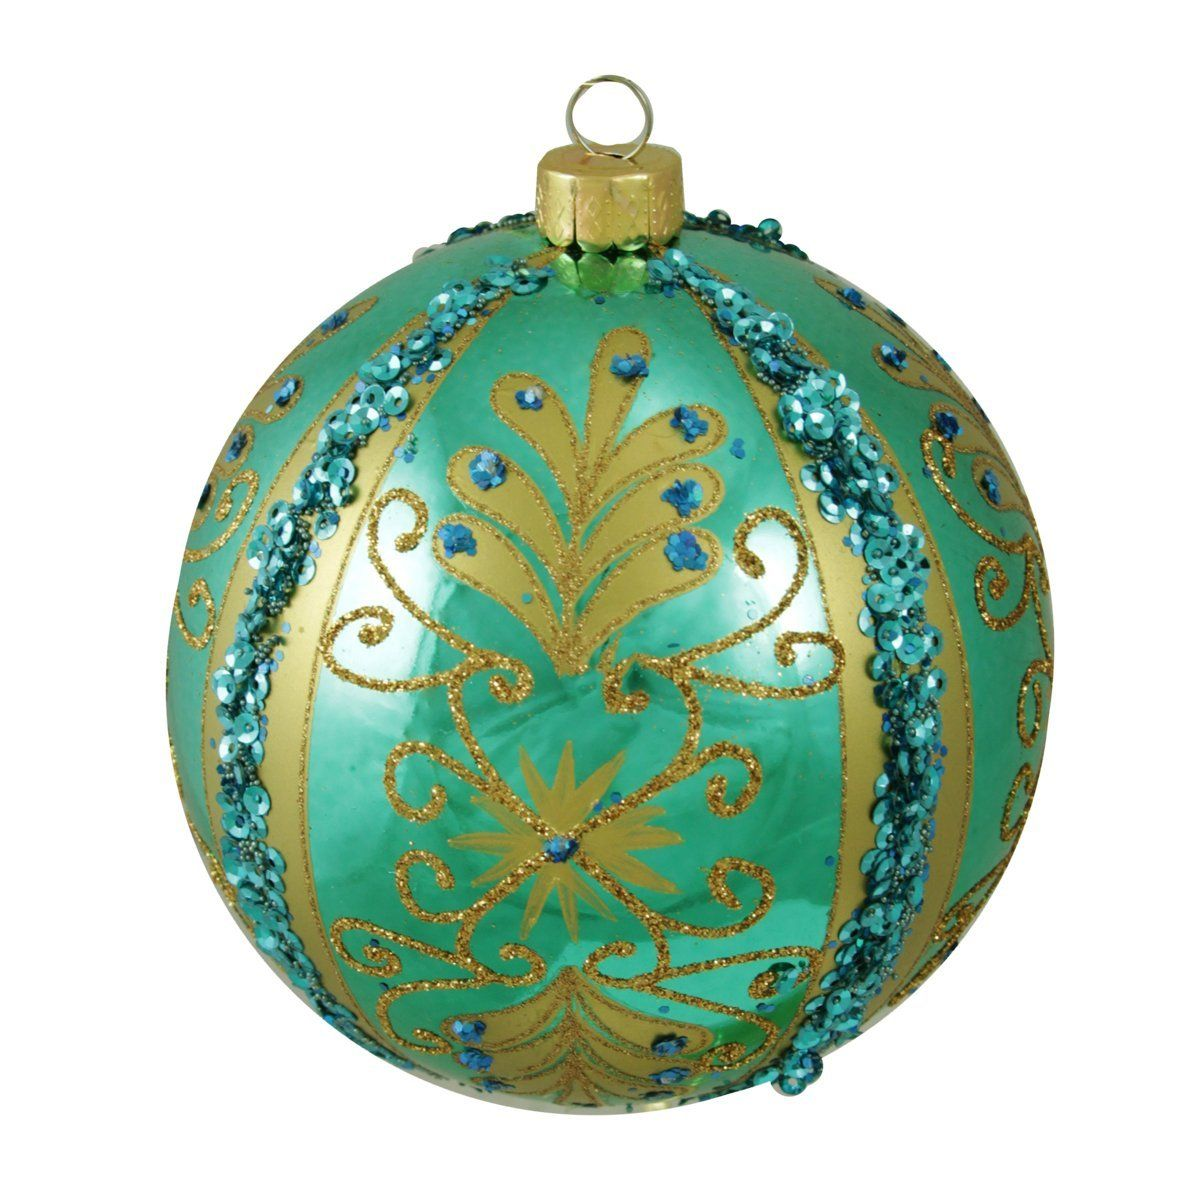 Teal Green Shiny Floral Striped Shatterproof Christmas Ball Ornament